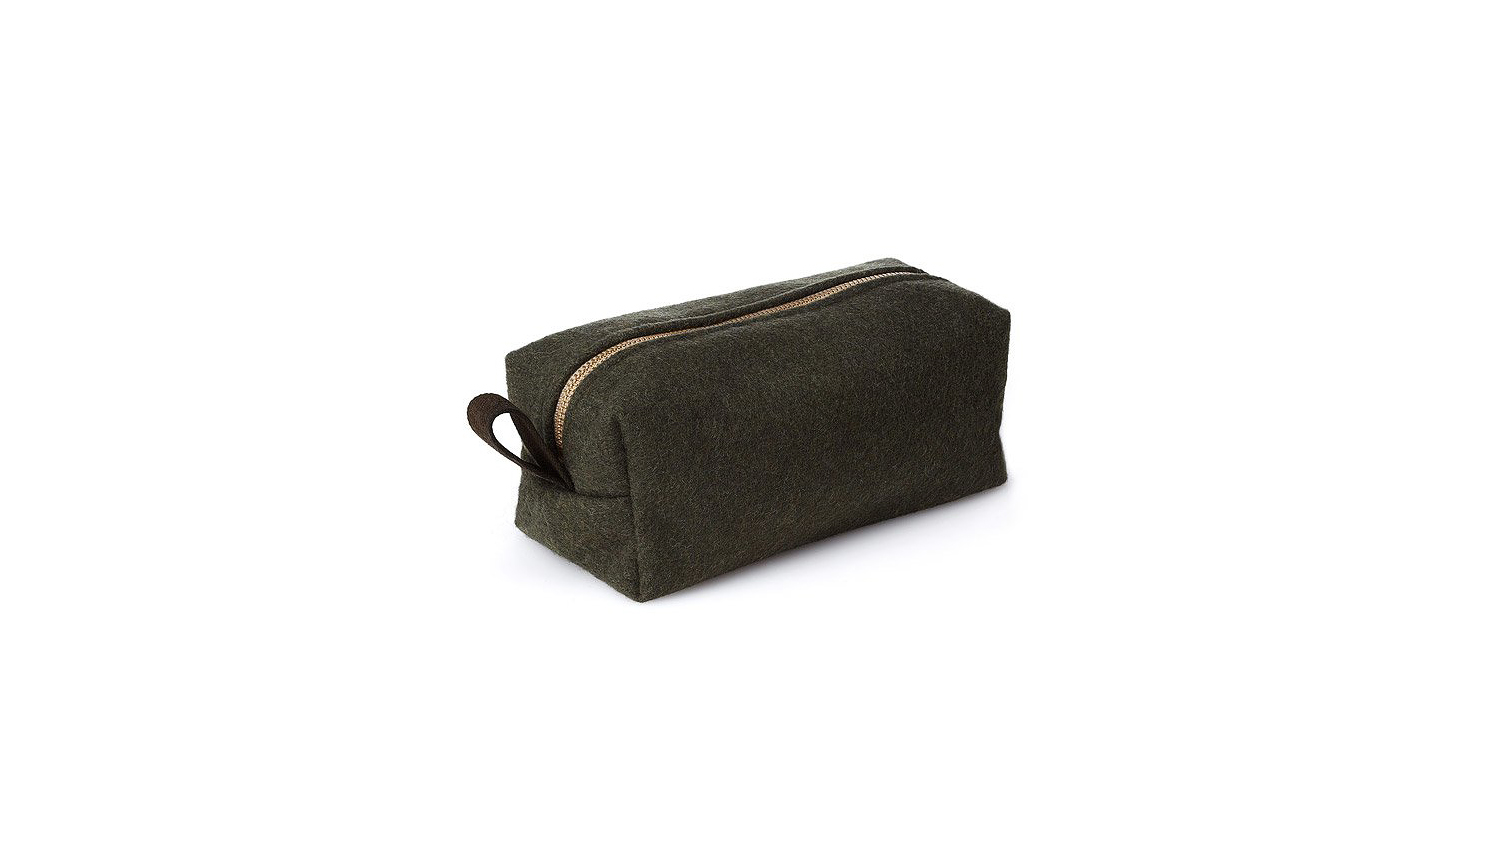 wool anniversary gift black toiletry bag